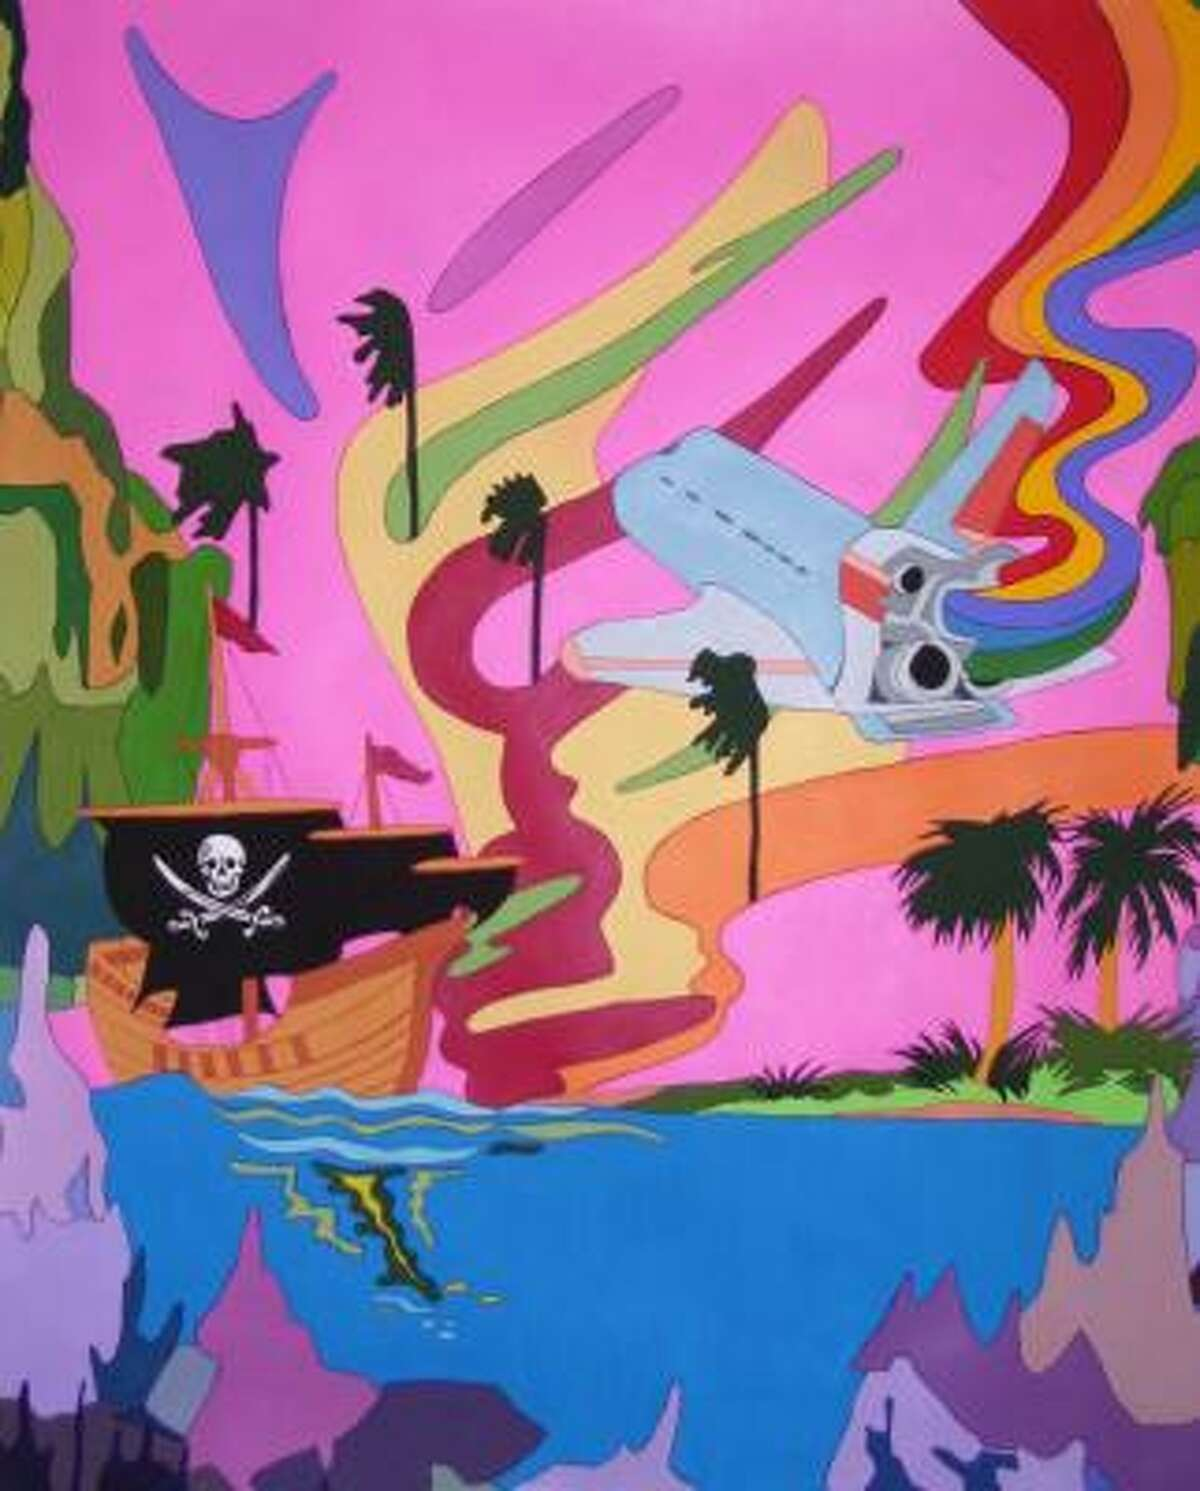 Mindy Kober's colorful gouaches, such as Florida, are inspired by images on the 50 States Quarters.